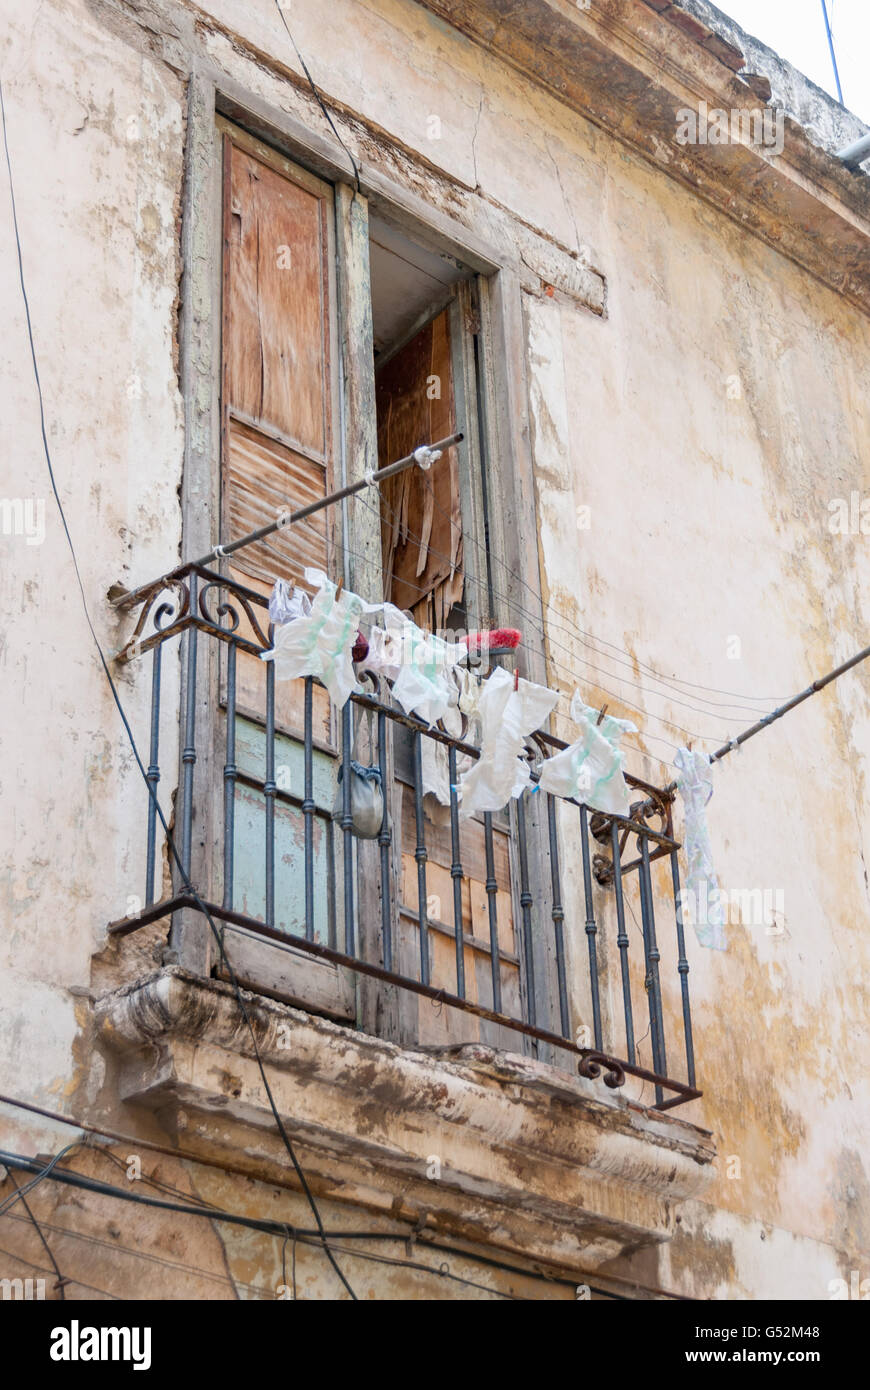 Cuba, Havana, Freshly washed disposable diapers on the clothesline on a balcony in the streets of Havana - Stock Image